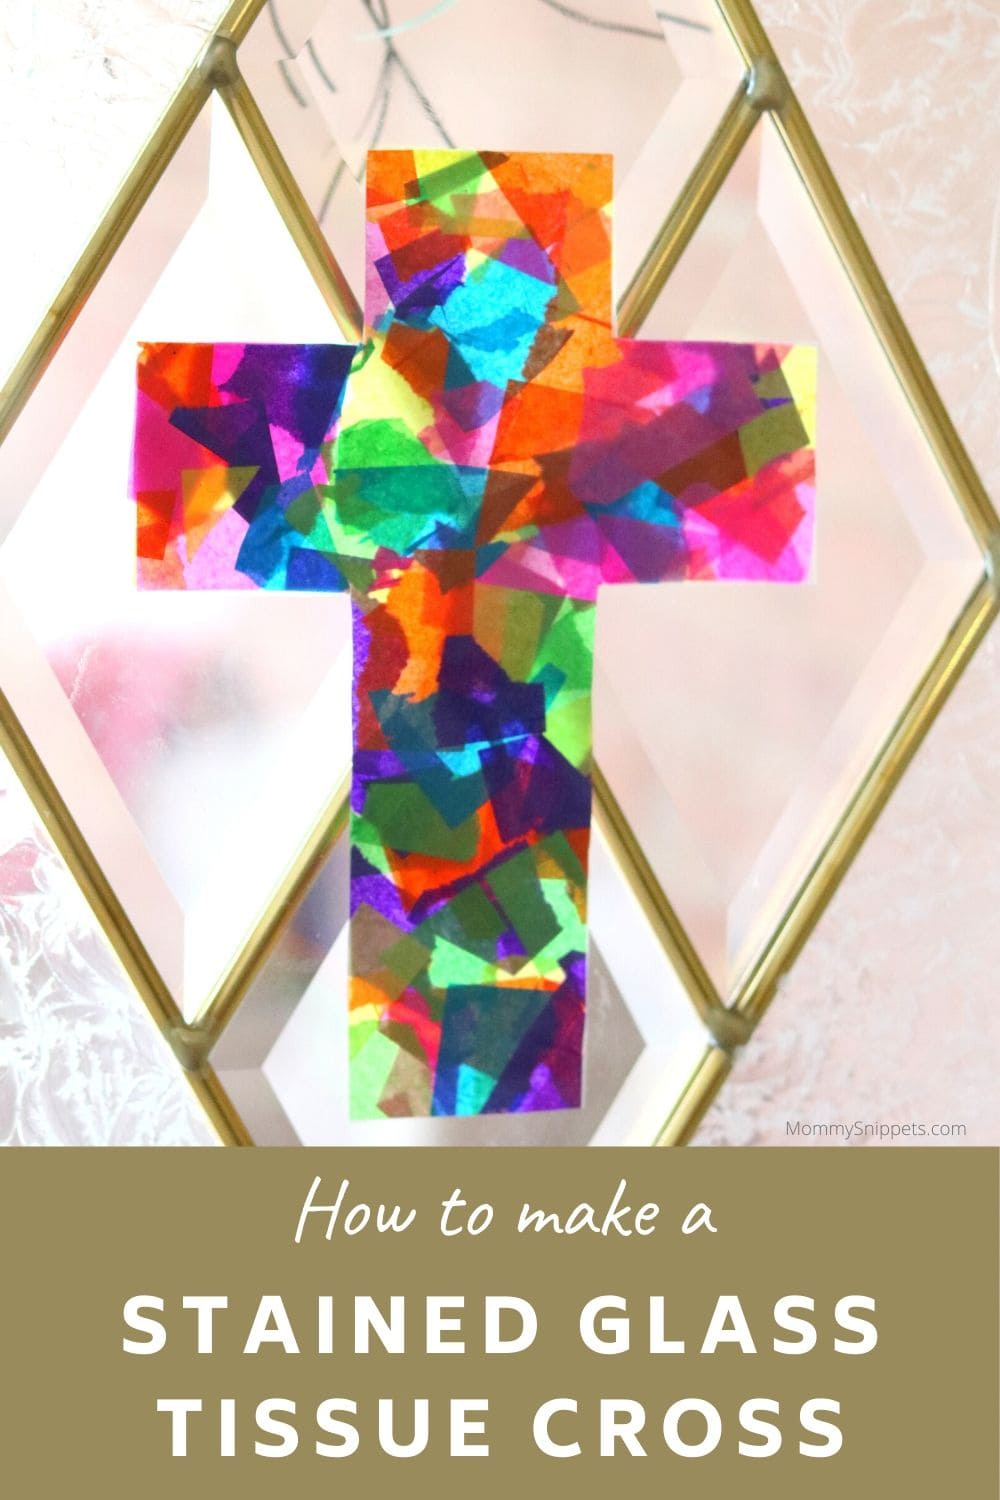 How to make a Stained Glass Tissue Cross- MommySnippets.com